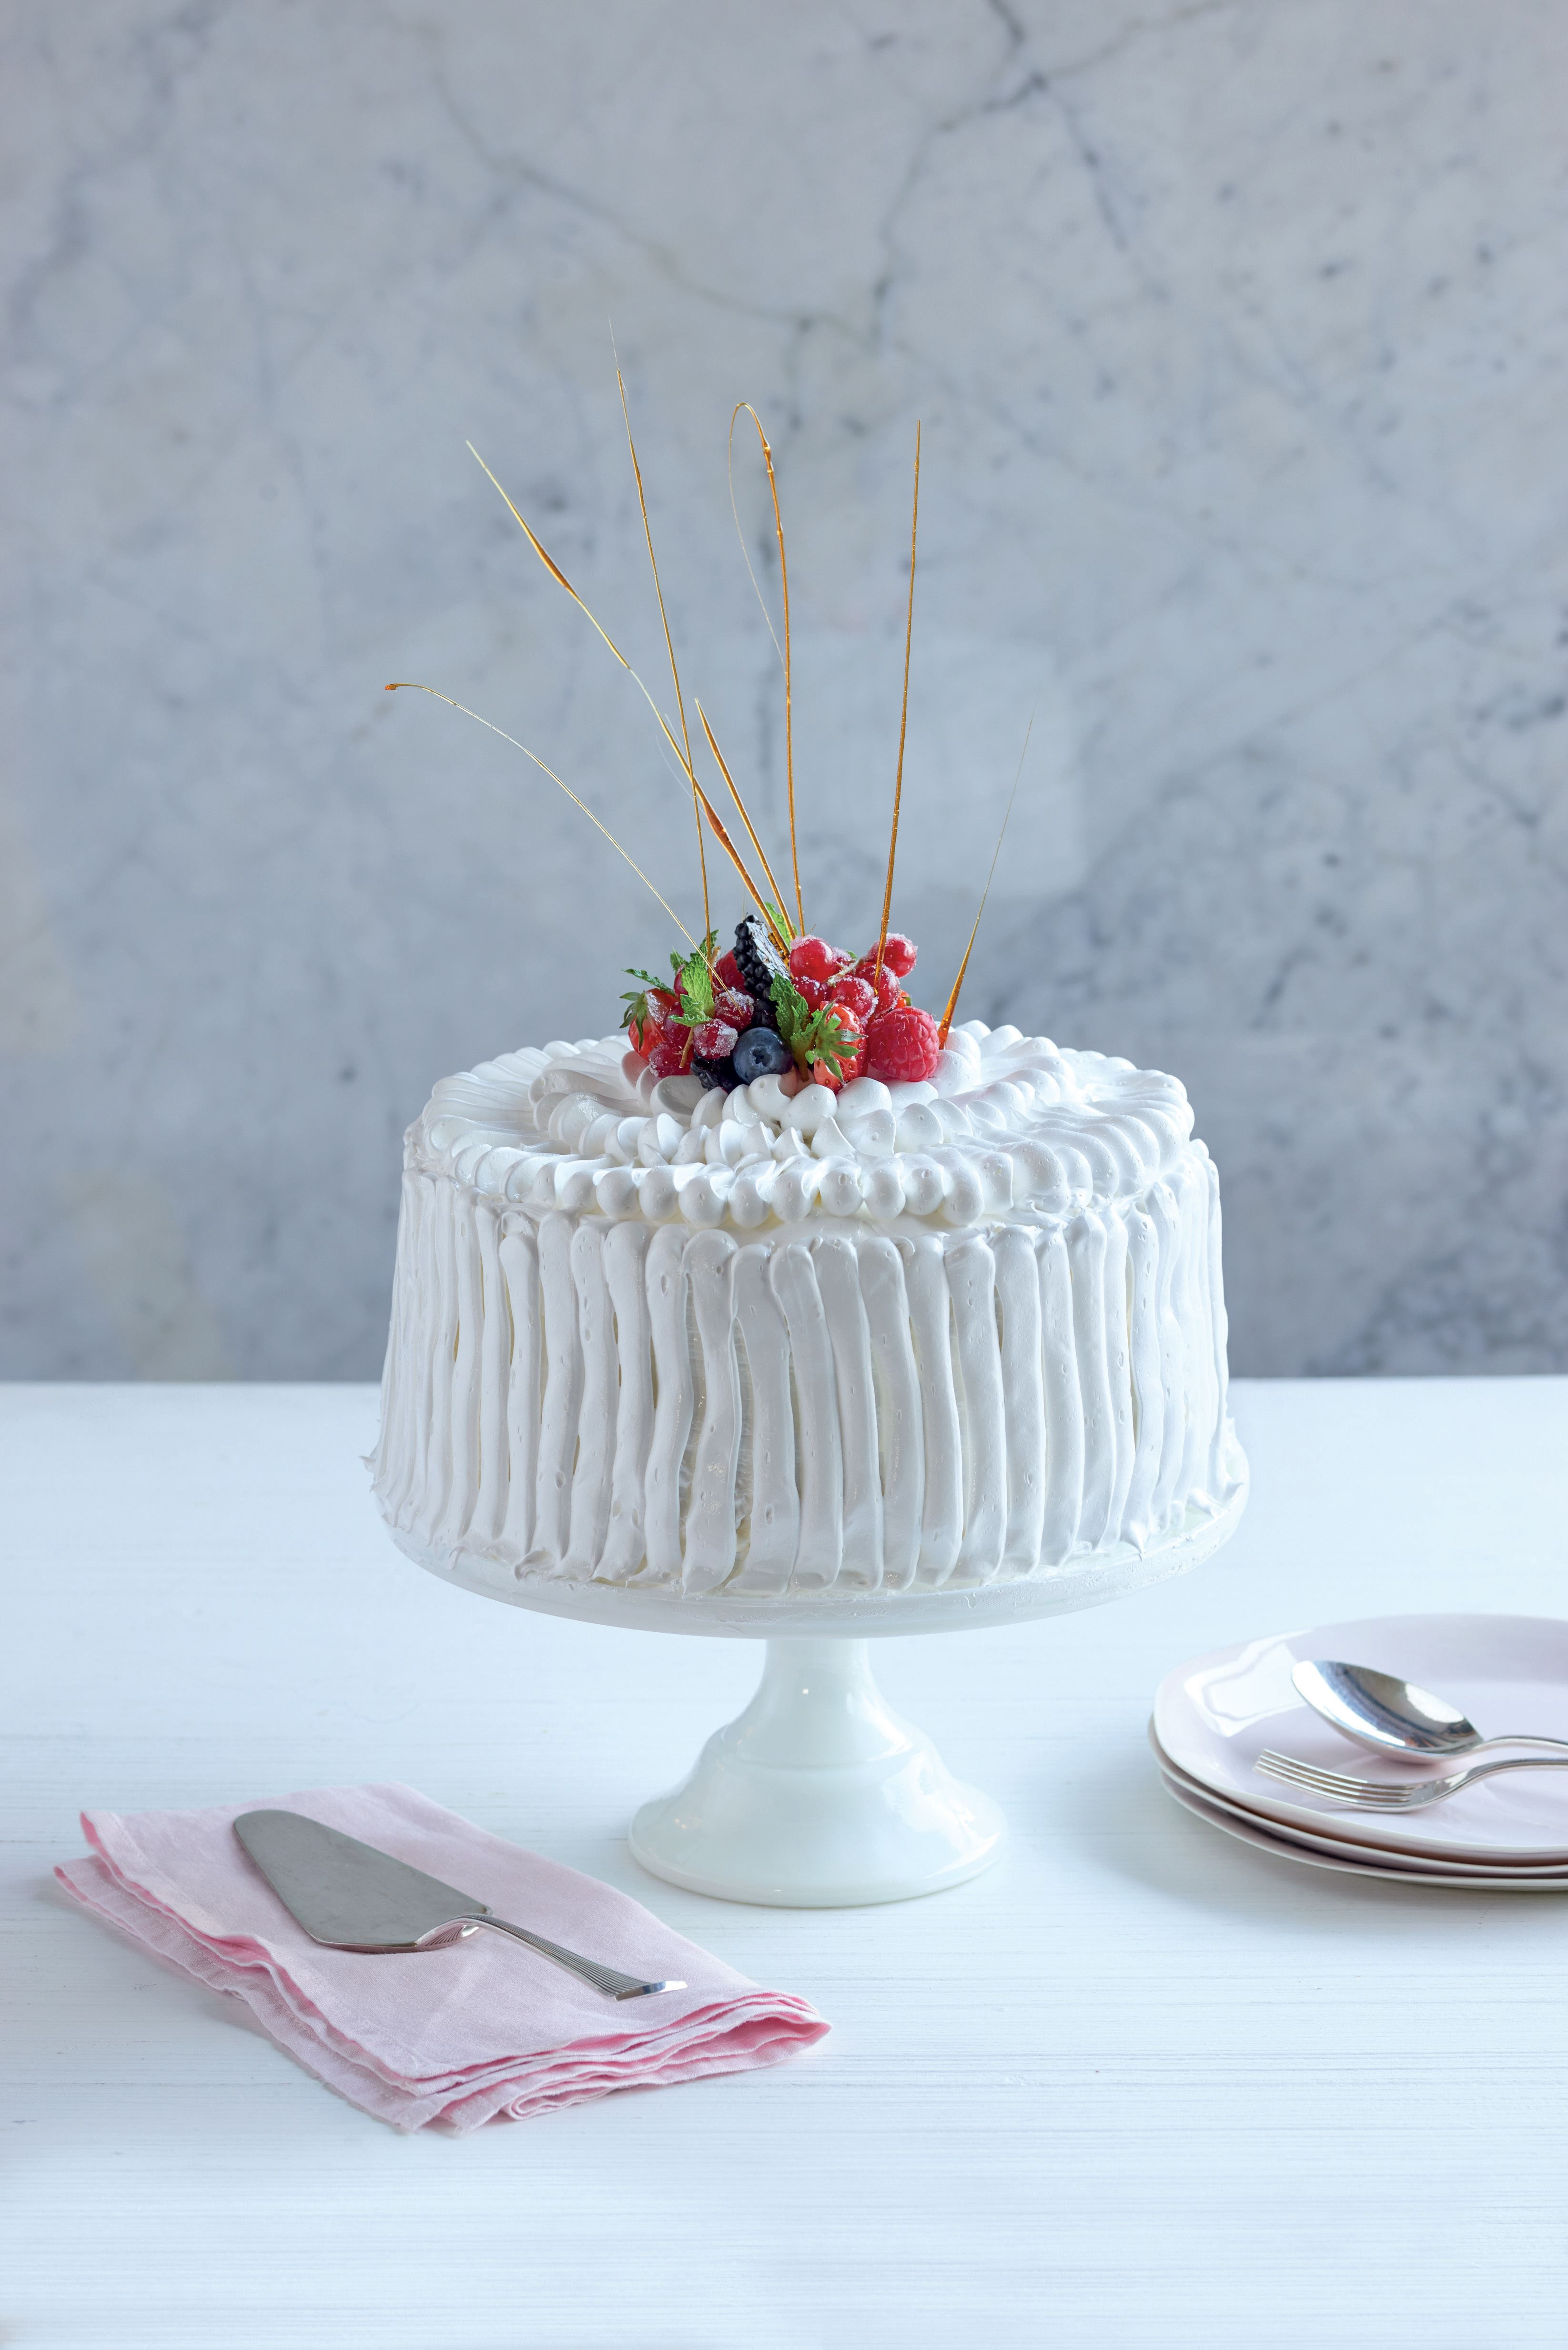 Neapolitan ice cream meringue cake